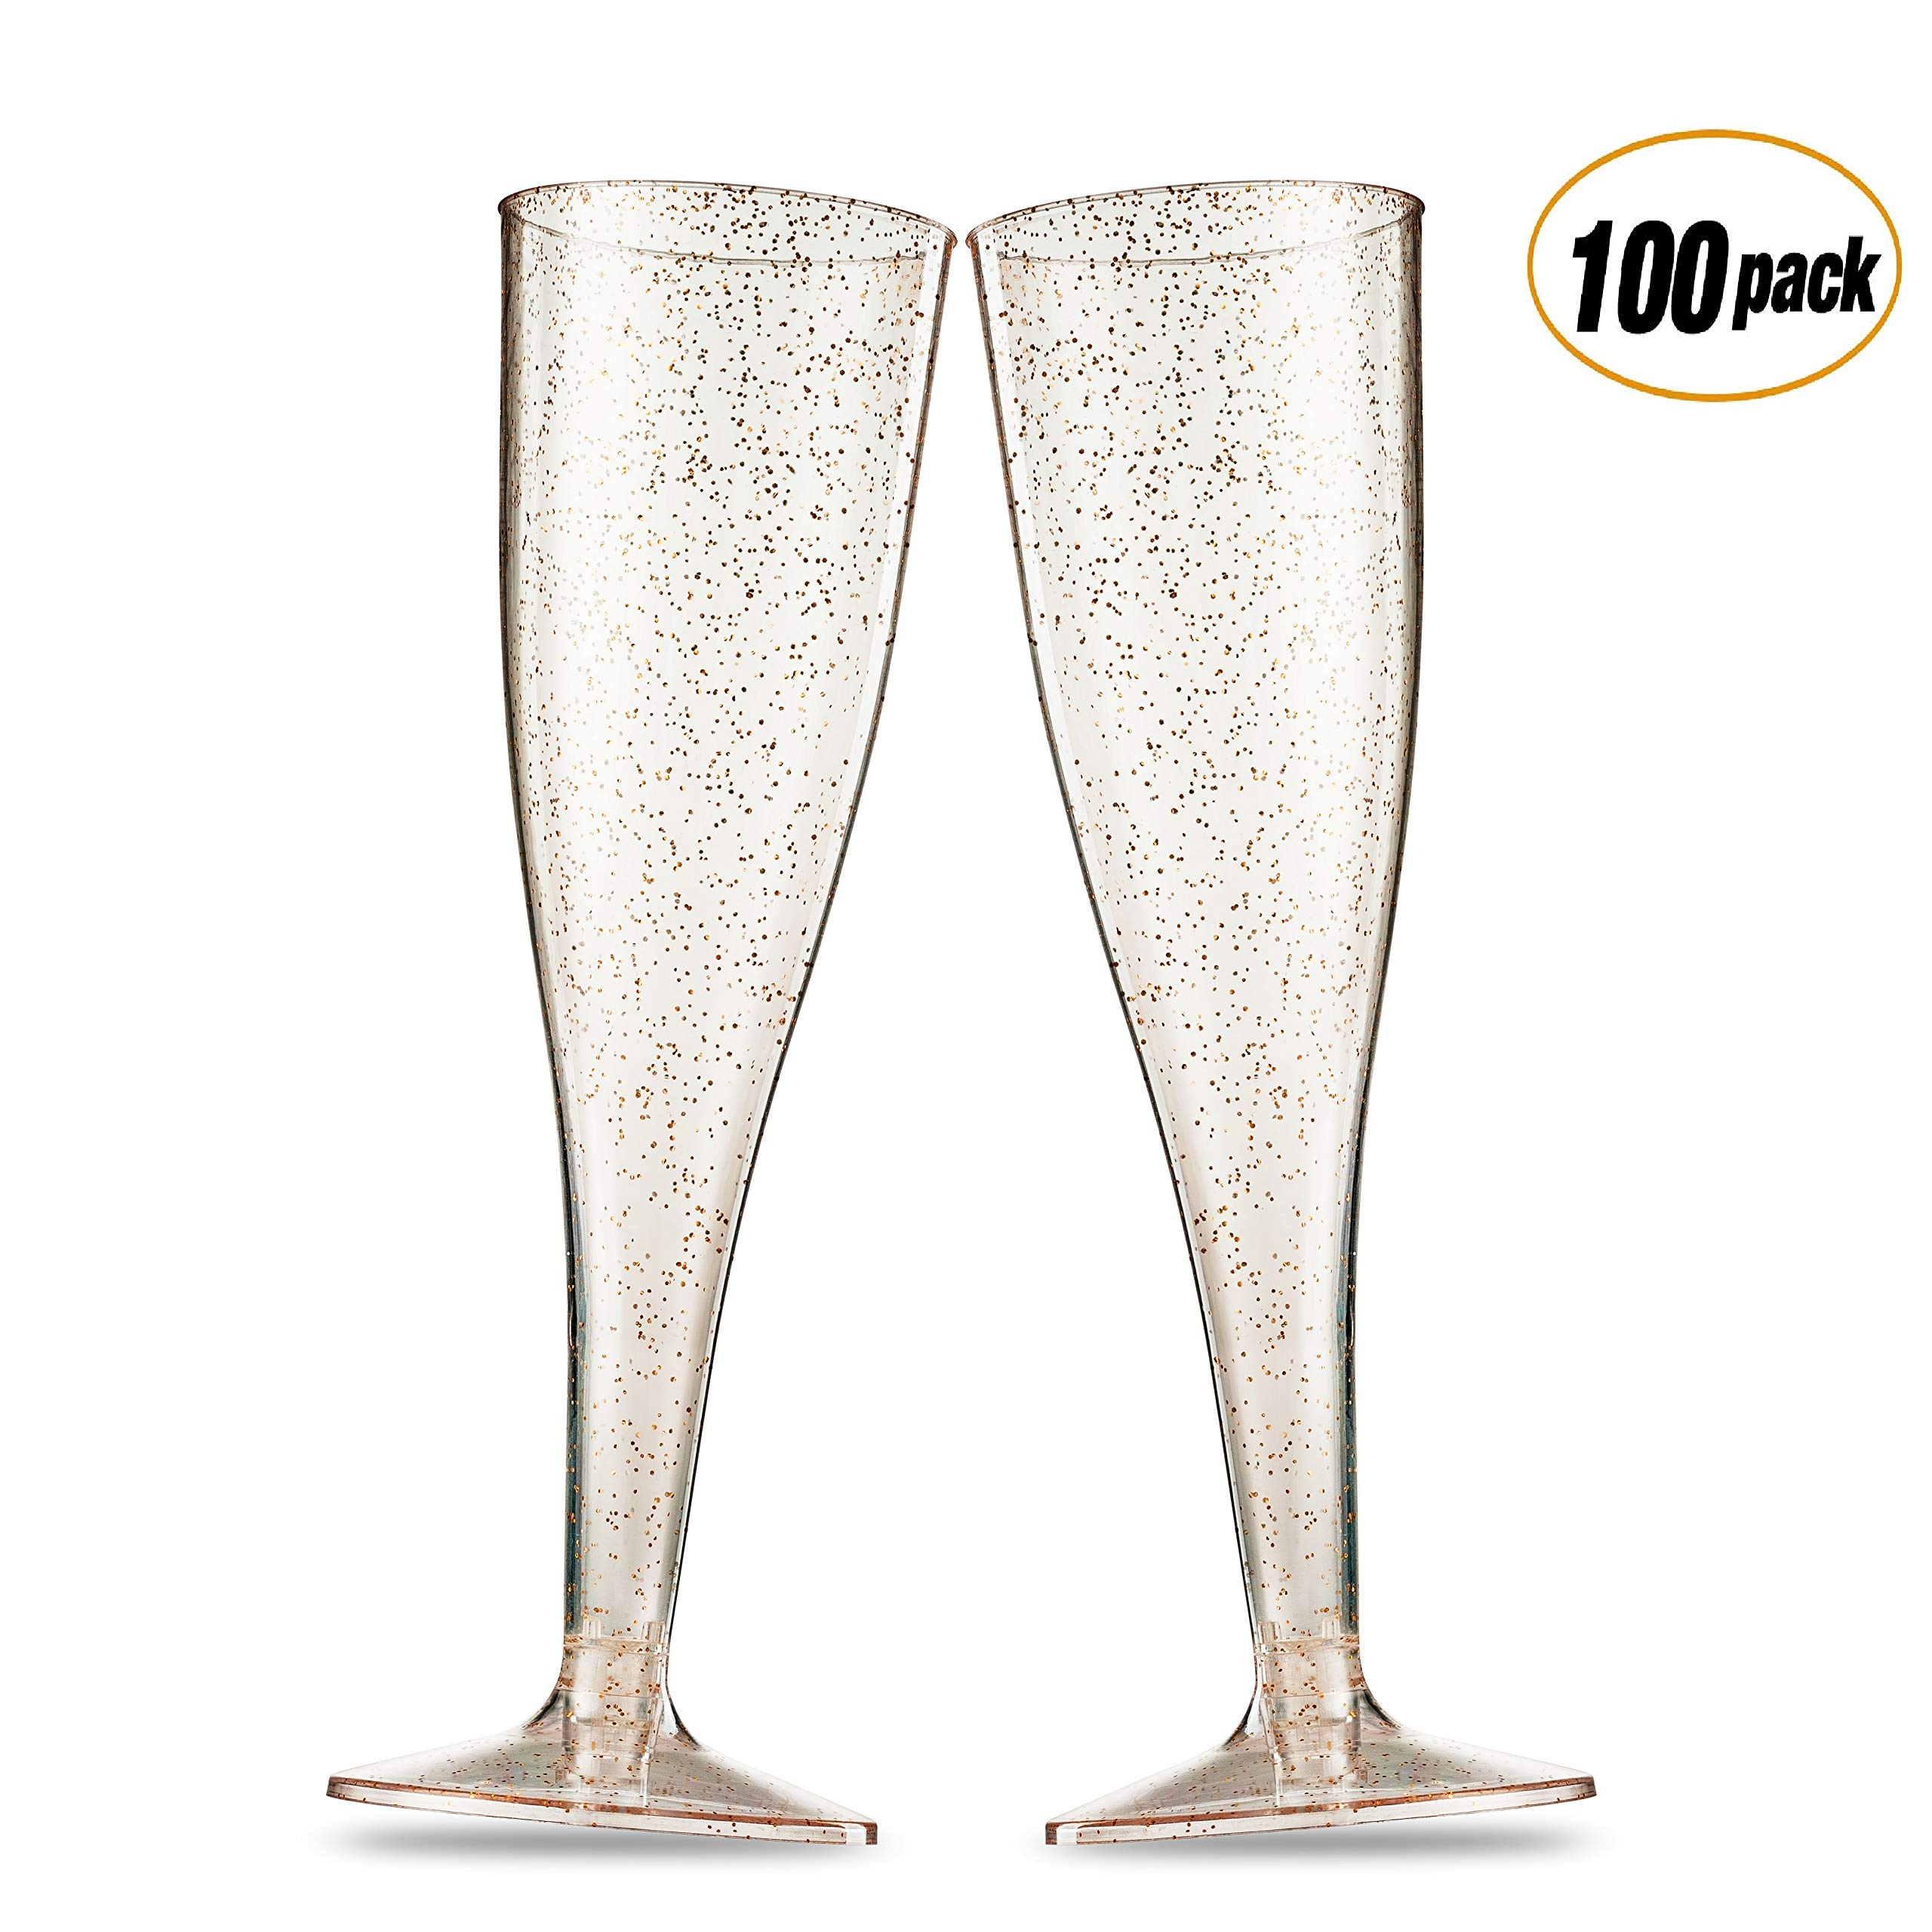 100 Pack Gold Glitter Plastic Champagne Flutes 5 Oz Clear Plastic Toasting Glasses Disposable Wedding Party Cocktail Cups by Munfix